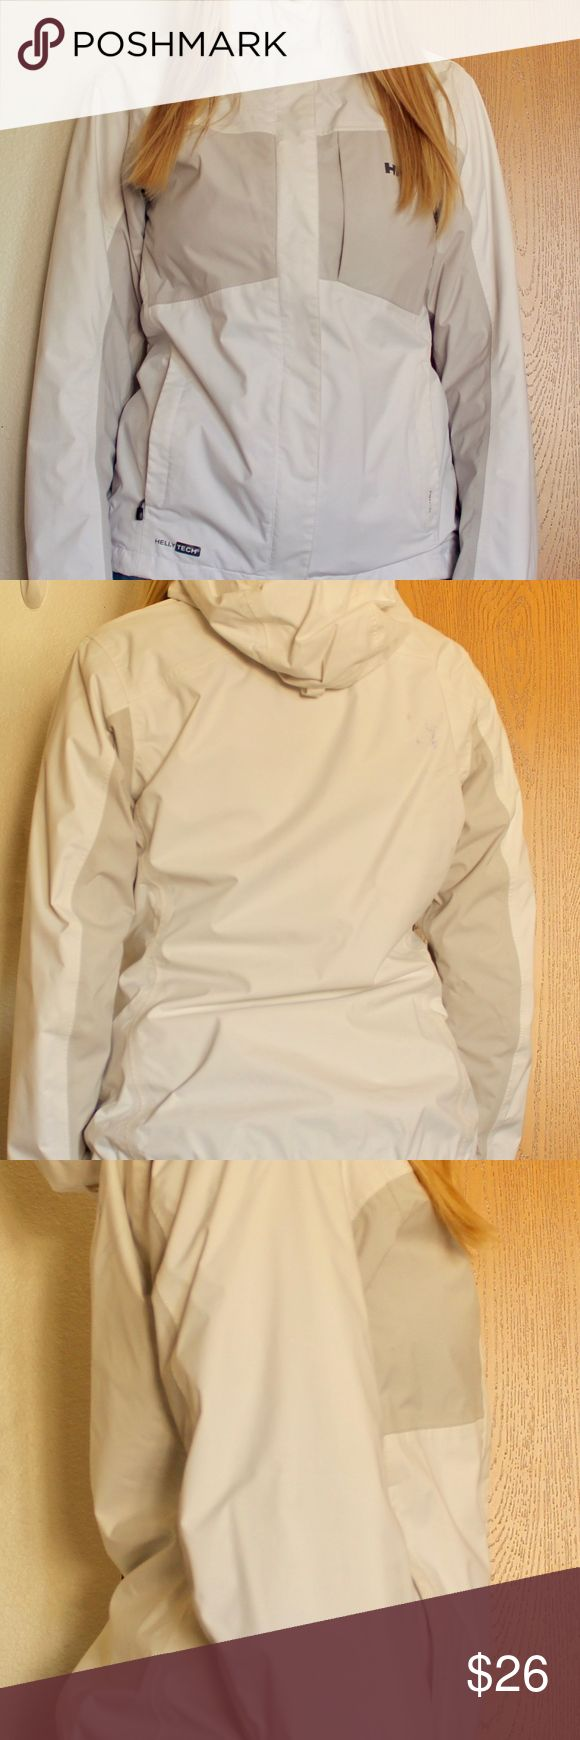 ✅Helly Hansen Packable White Shell Jacket w/Hood ~Helly Hansen Packable Shell ~Stuffs Inside Small Bag Inside The Pocket! ~Size: Women's Small  ~Helly Technology ~Full Zipper Up To Neck ~Breathable Mesh Inside ~Markings On Back Right Shoulder(Pictured Above) ~Bought Brand New ~Good Condition ~Great For Layering ~White & Gray Colors Helly Hansen Jackets & Coats